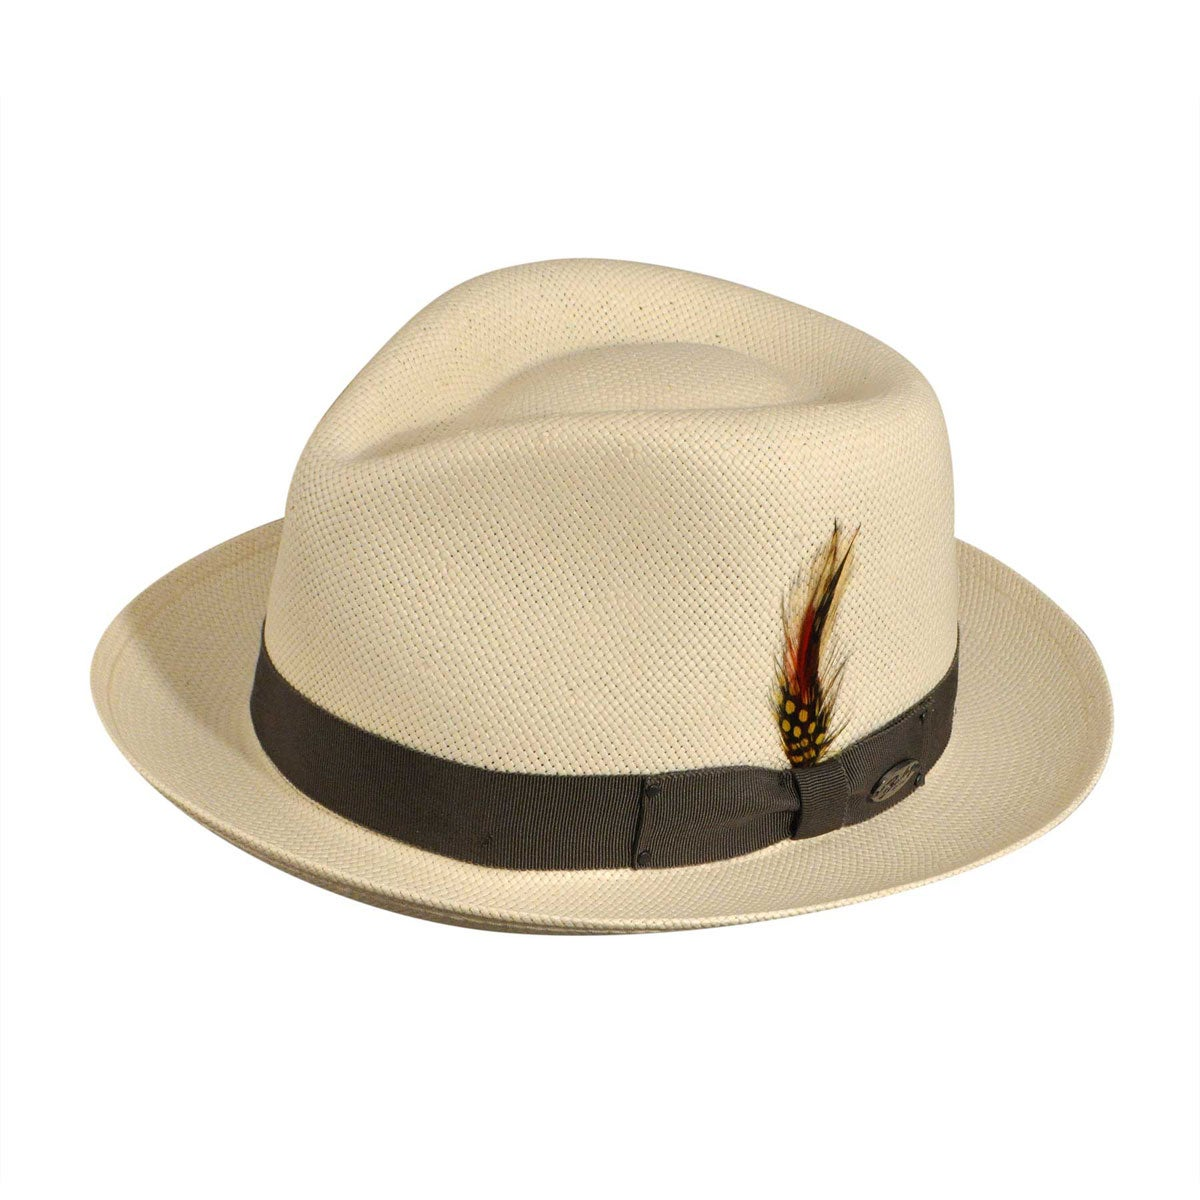 Buy 1940s Style Mens Hats